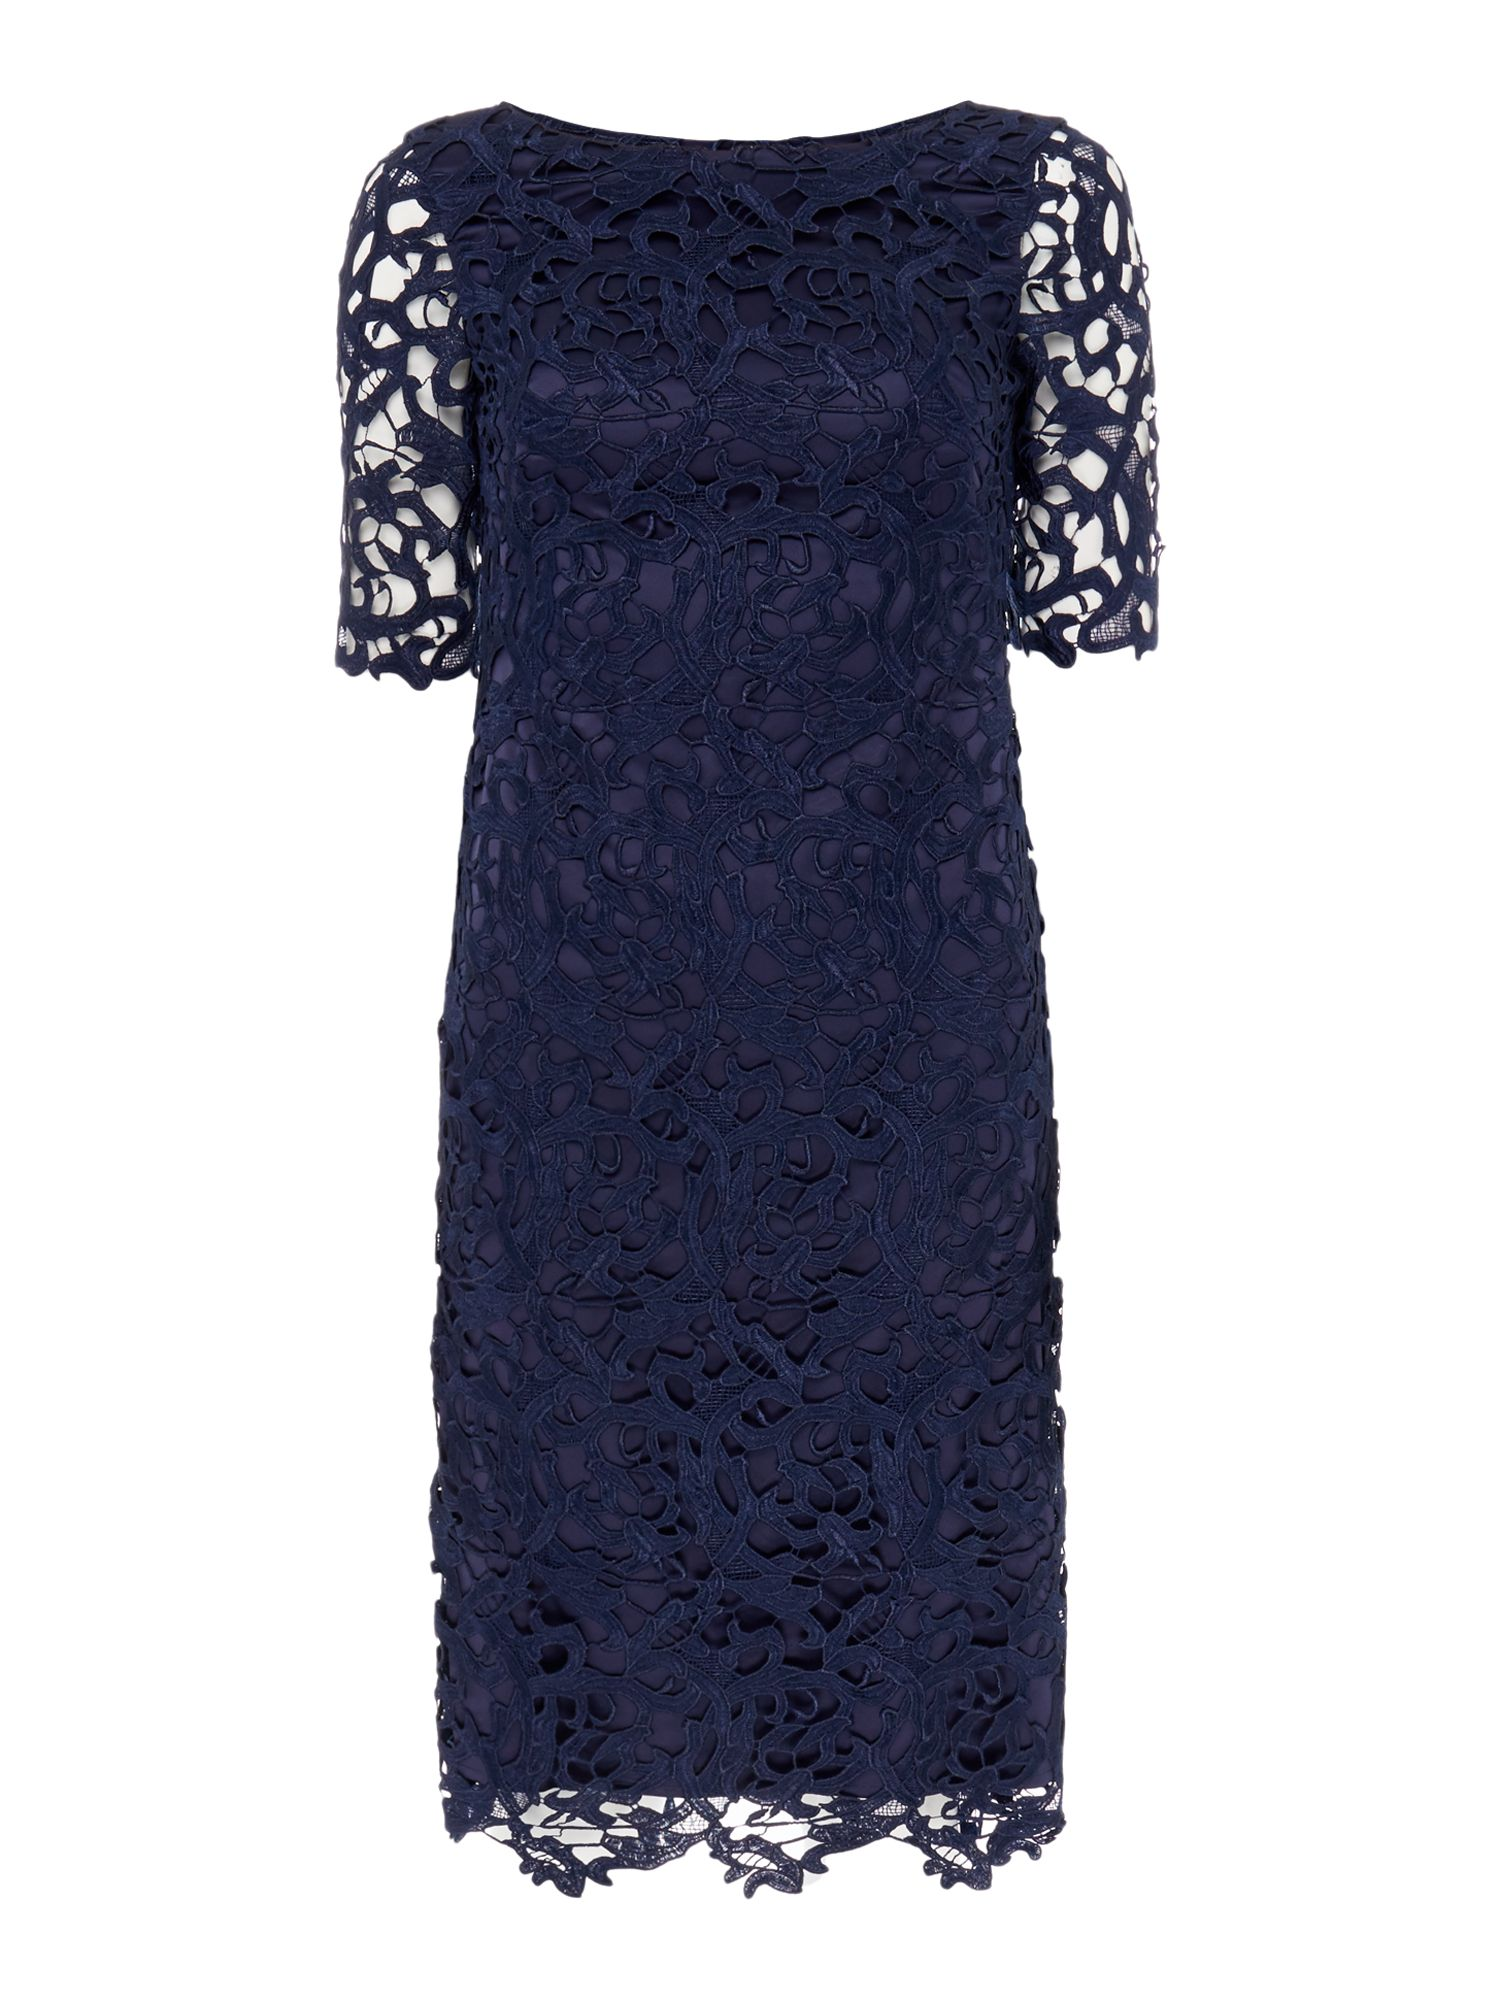 Untold All Over Lace Dress, Blue